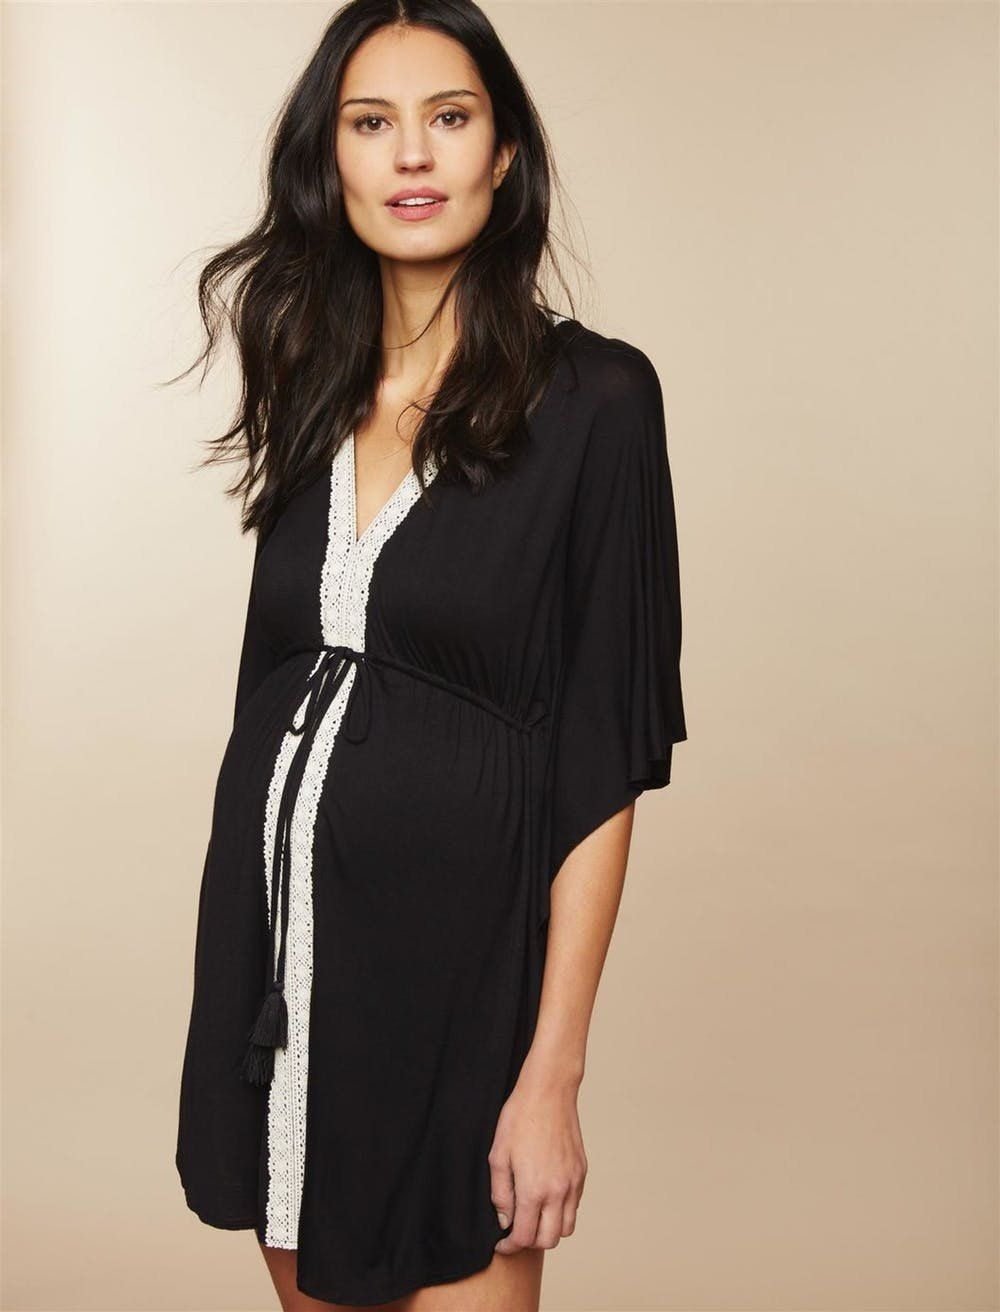 f01cef8eac Stylish maternity beach cover-ups are a must for any expecting mama this  summer!